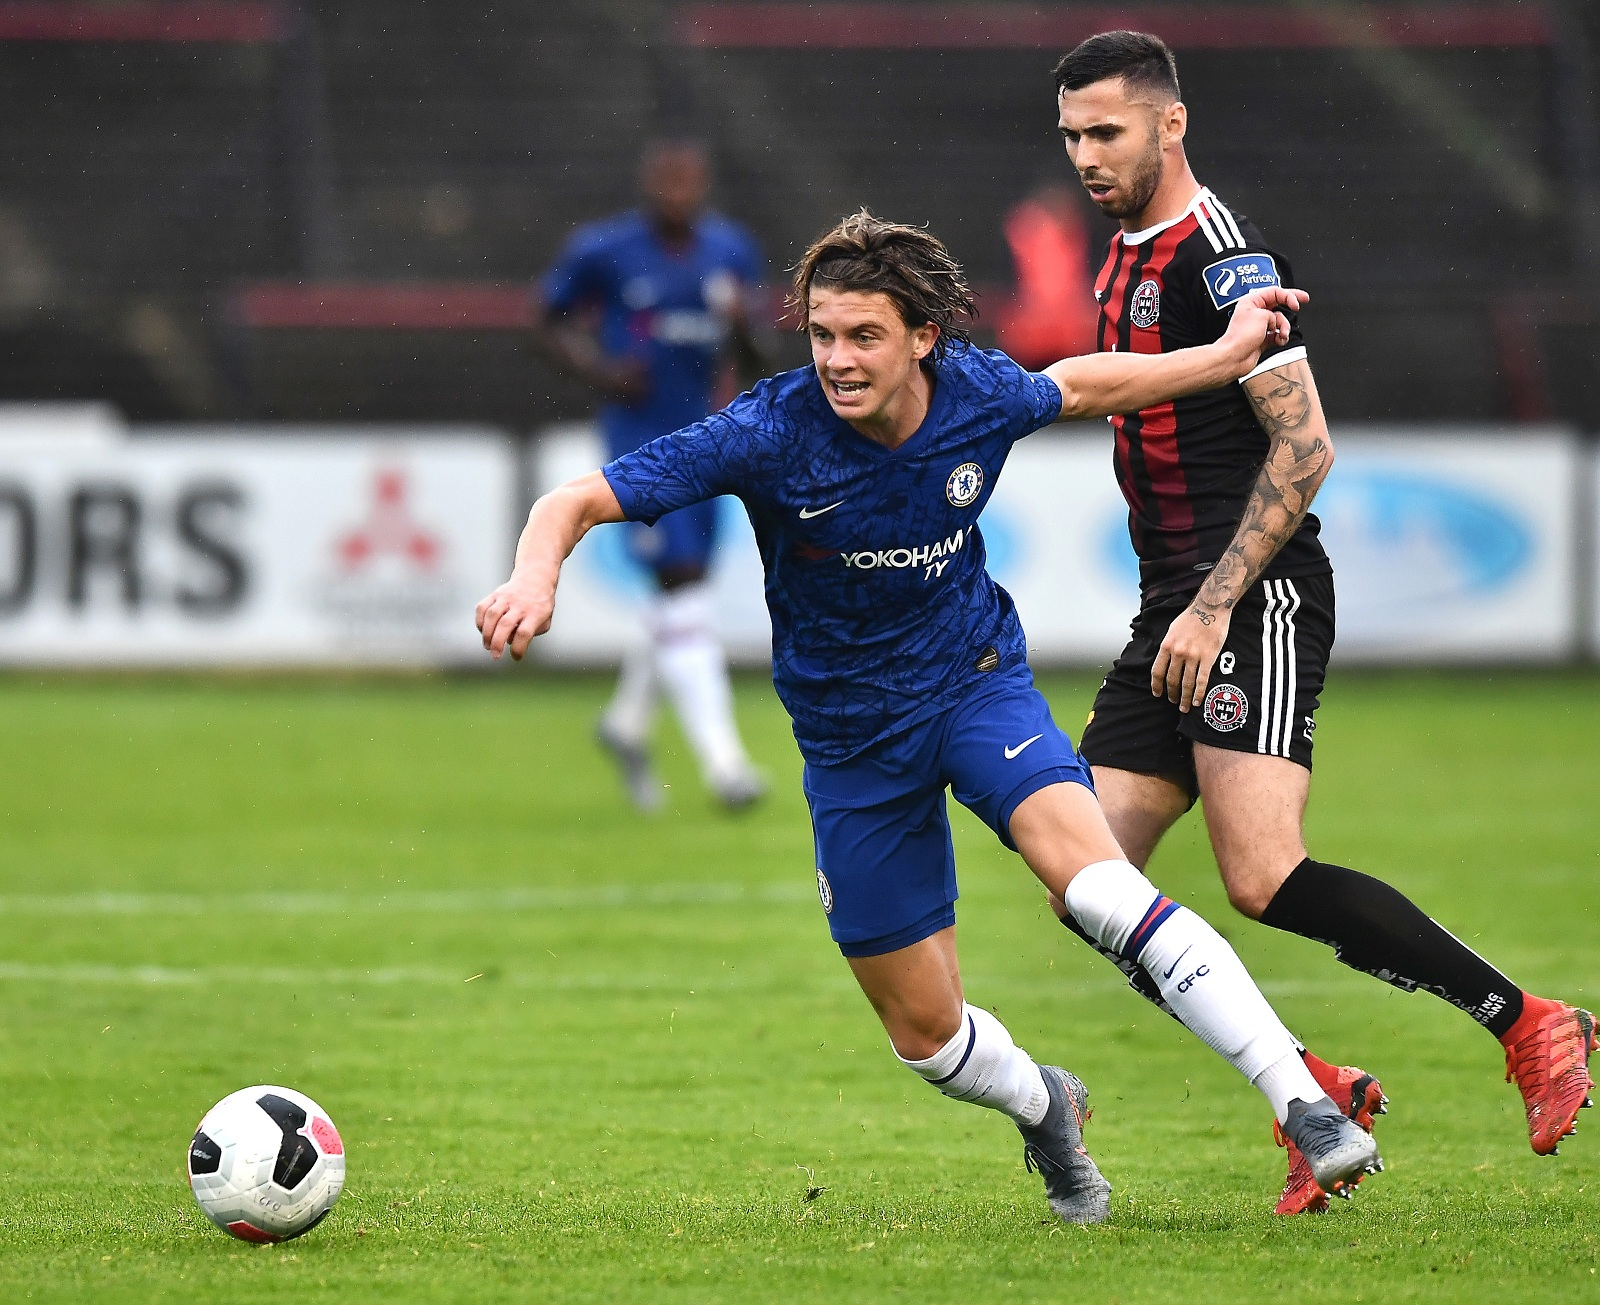 Conor Gallagher is amongst the best young talents at Chelsea